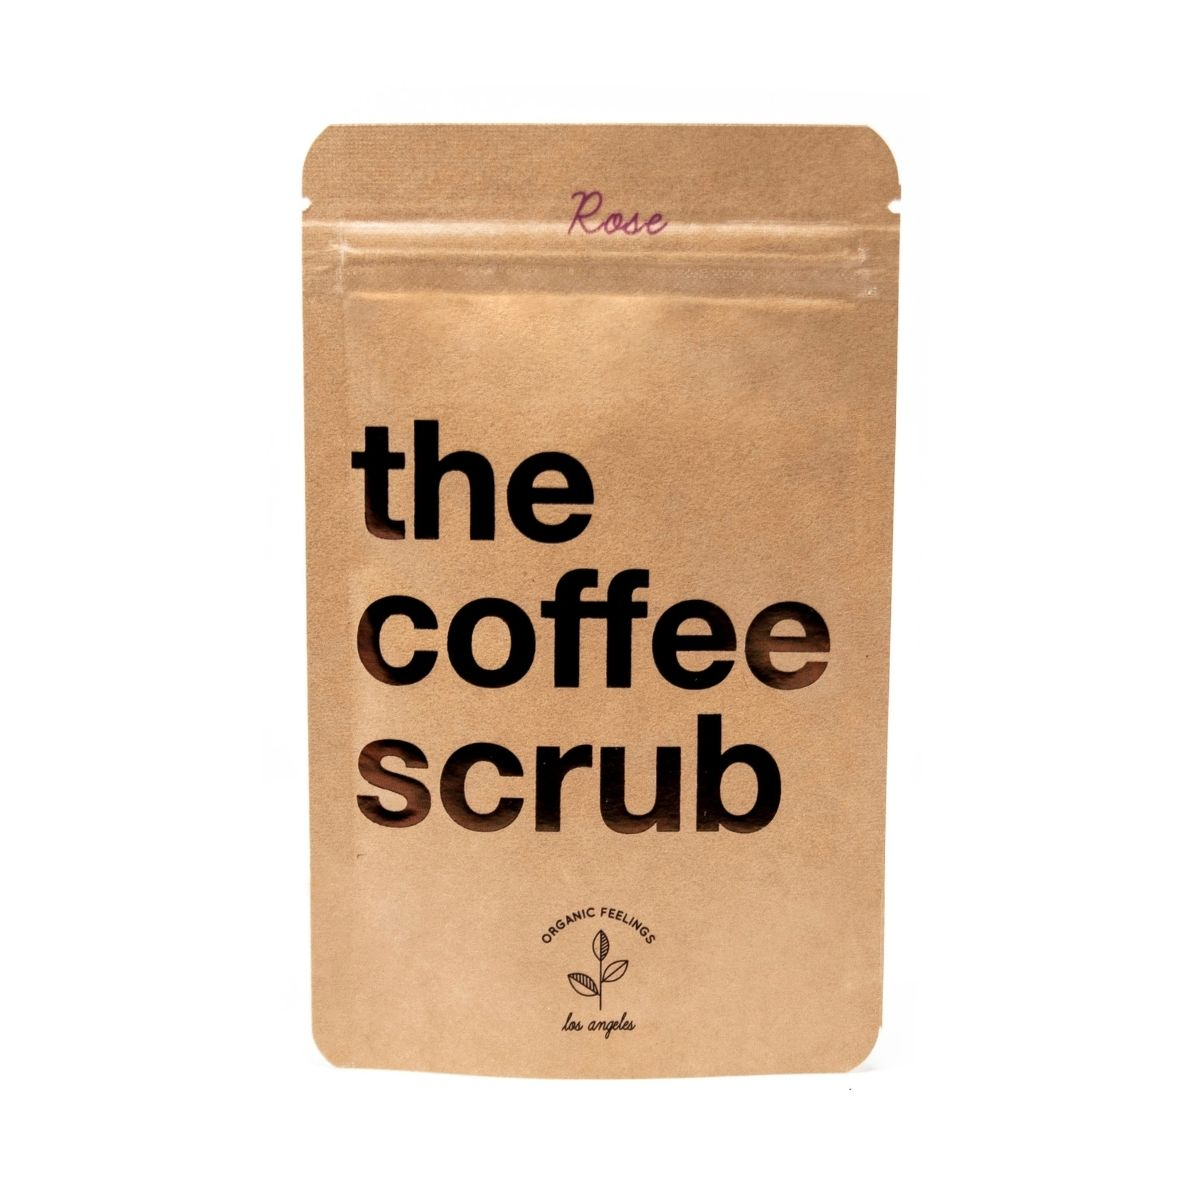 Rose Coffee Scrub (50g) - TheCoffeeScrub